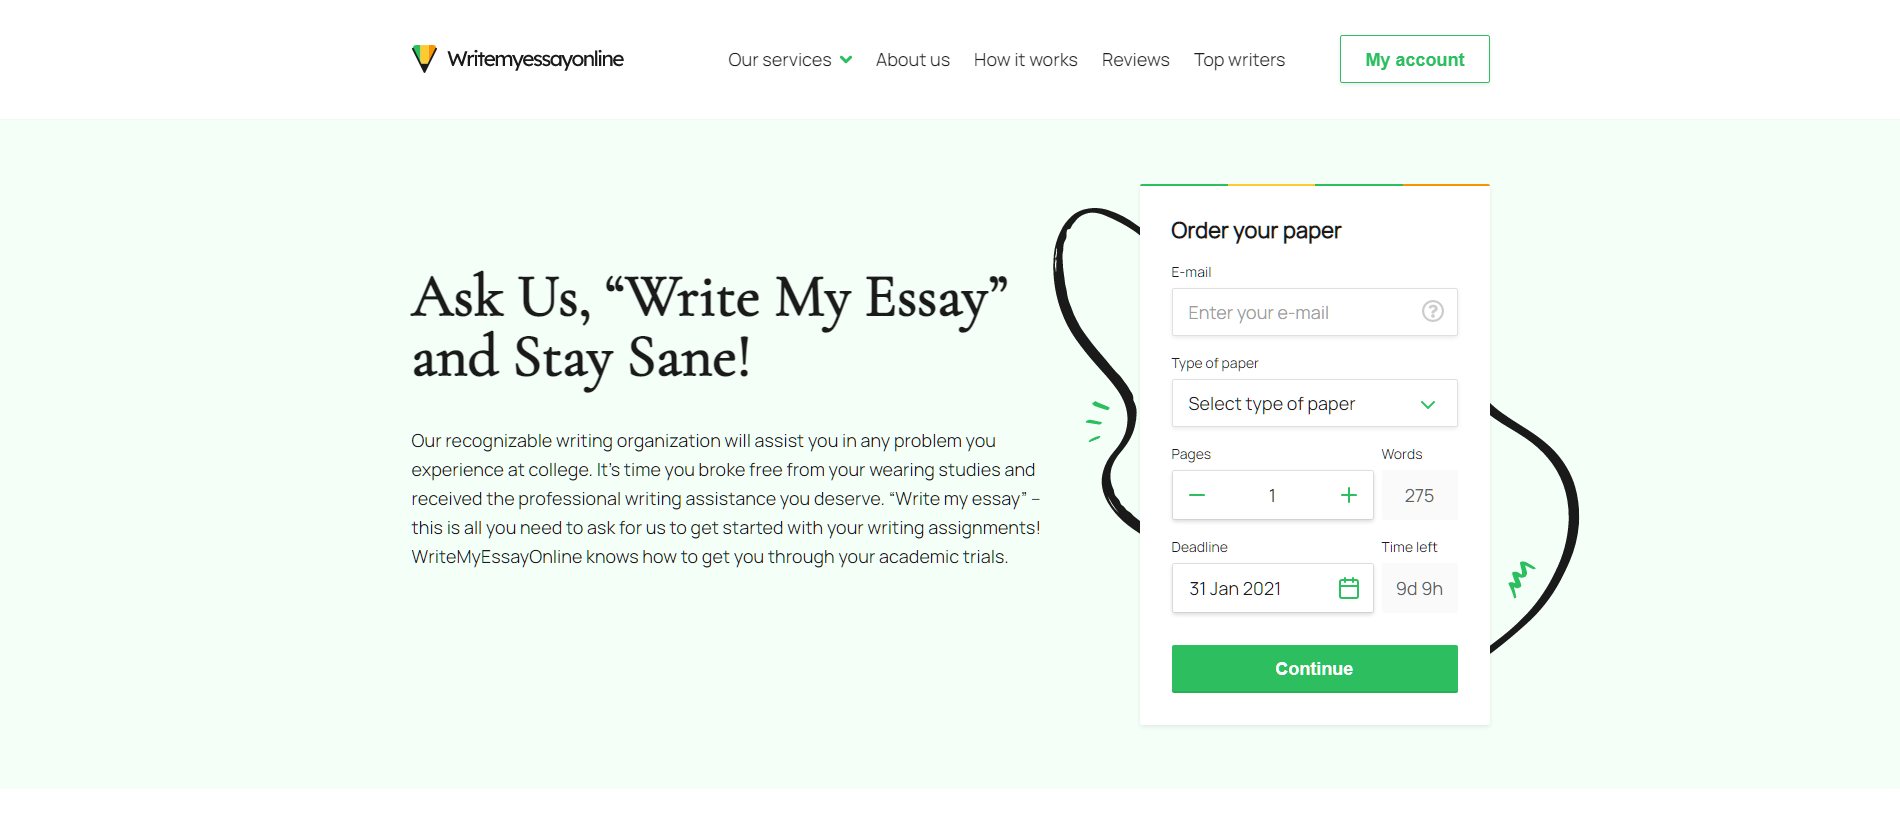 Writemyessayonline.com Review: Quality, Prices, and Online Reputation